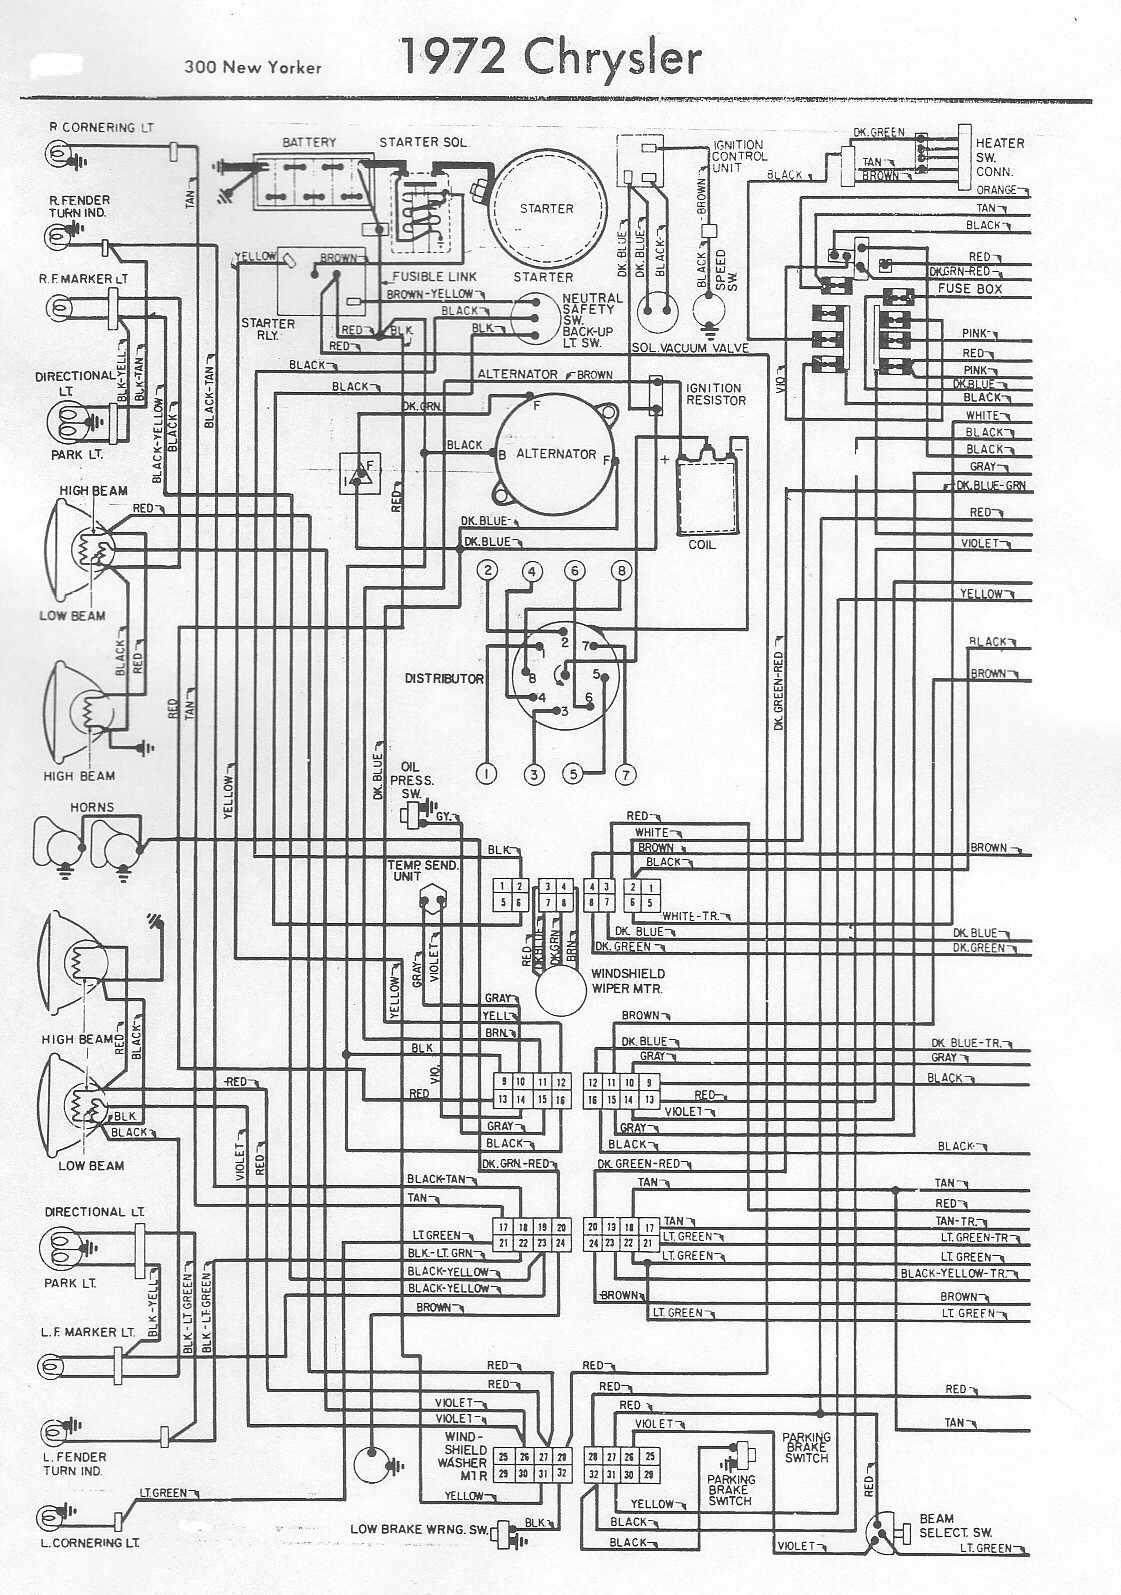 1948 cadillac wiring harness wiring diagram then 1978 cadillac deville wiring-diagram 1954 cadillac wiring diagrams #13